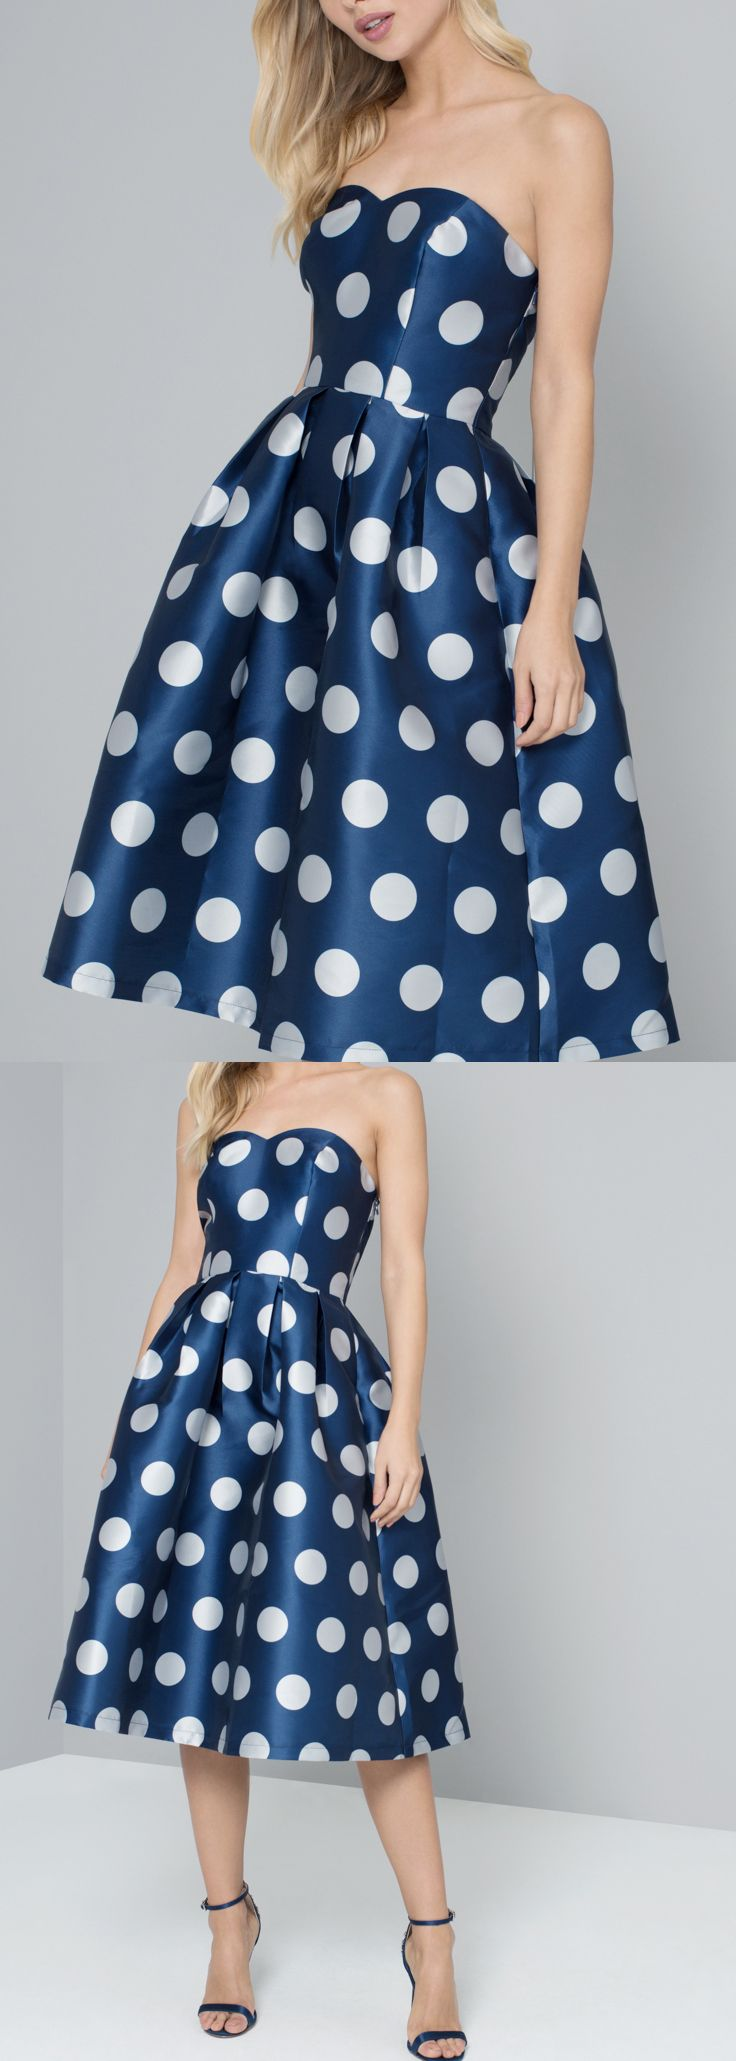 Go dotty this season with this polka dot print - features a fitted bandeau bodice with elasticated back, box pleat midi skirt and zip fastening from Chi Cli London. Polka Dot Fashion. What to wear to spring wedding, wedding guest outfits. What to wear to the races. Polka Dot Dress for Royal Ascot. #weddings #polkadotdress #dresses #fashion #fashionista #SS18 #2018 #newseason #polkadots #affiliatelink #chichi #outfits #mididress